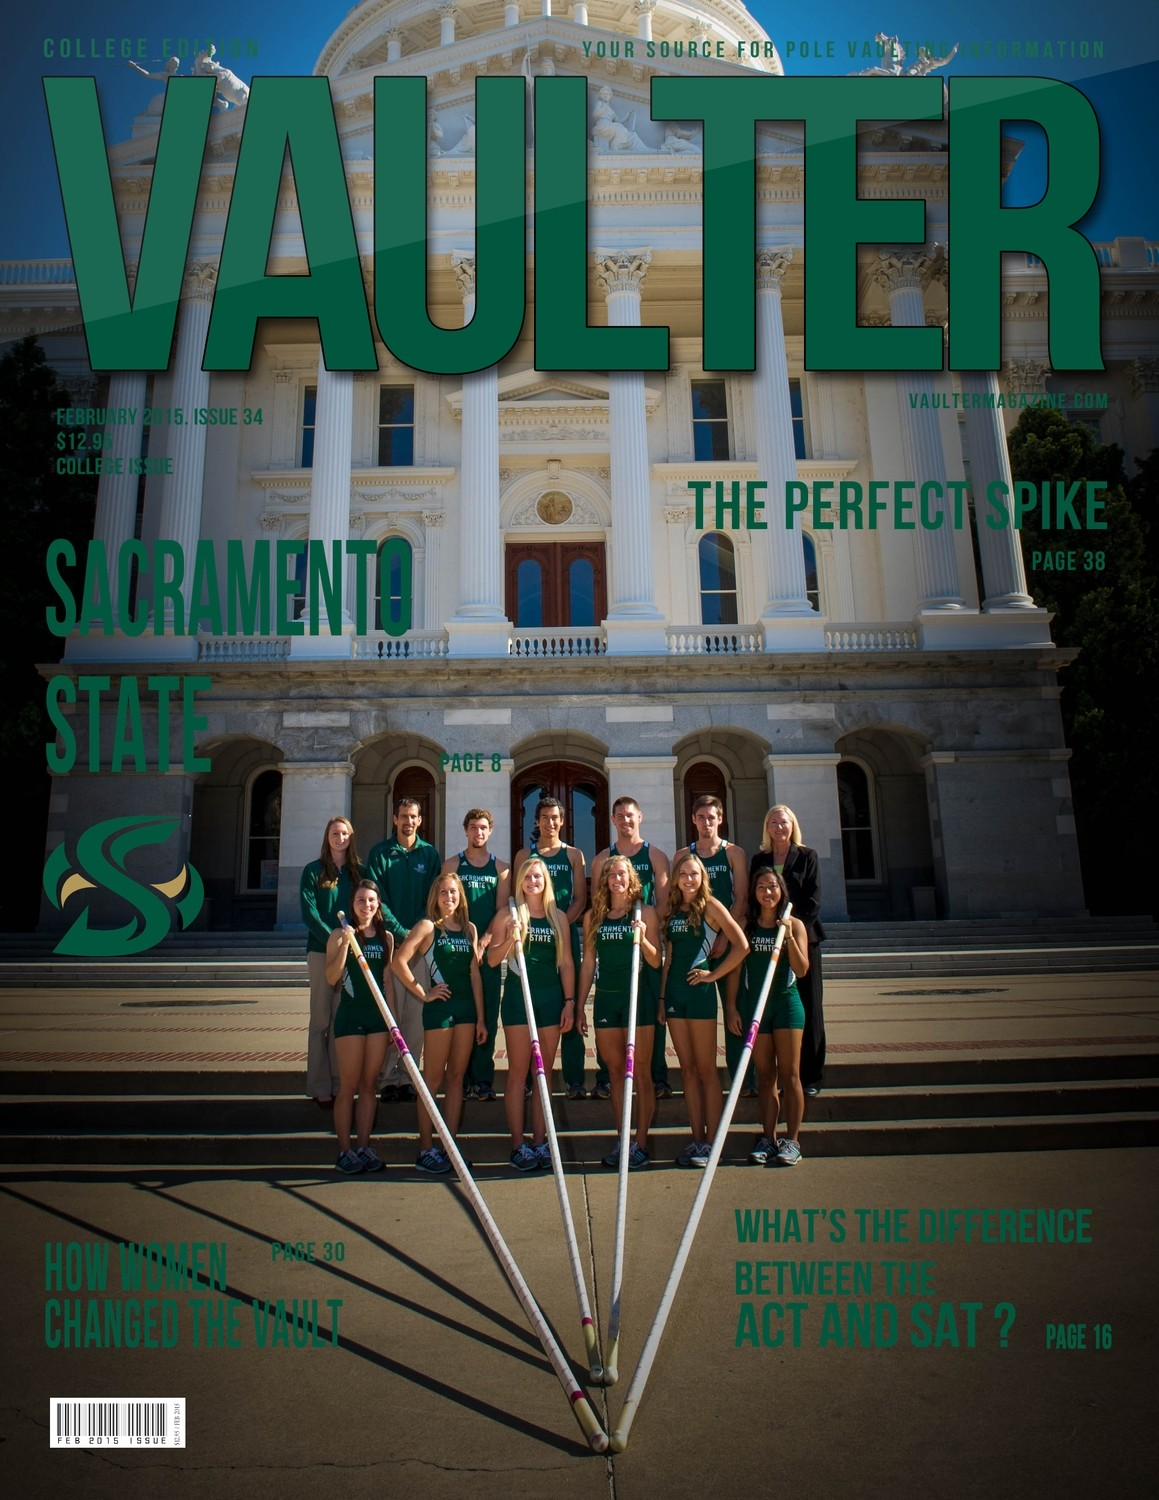 "12"" x 18"" Poster of the Sacramento State University Cover of VAULTER"